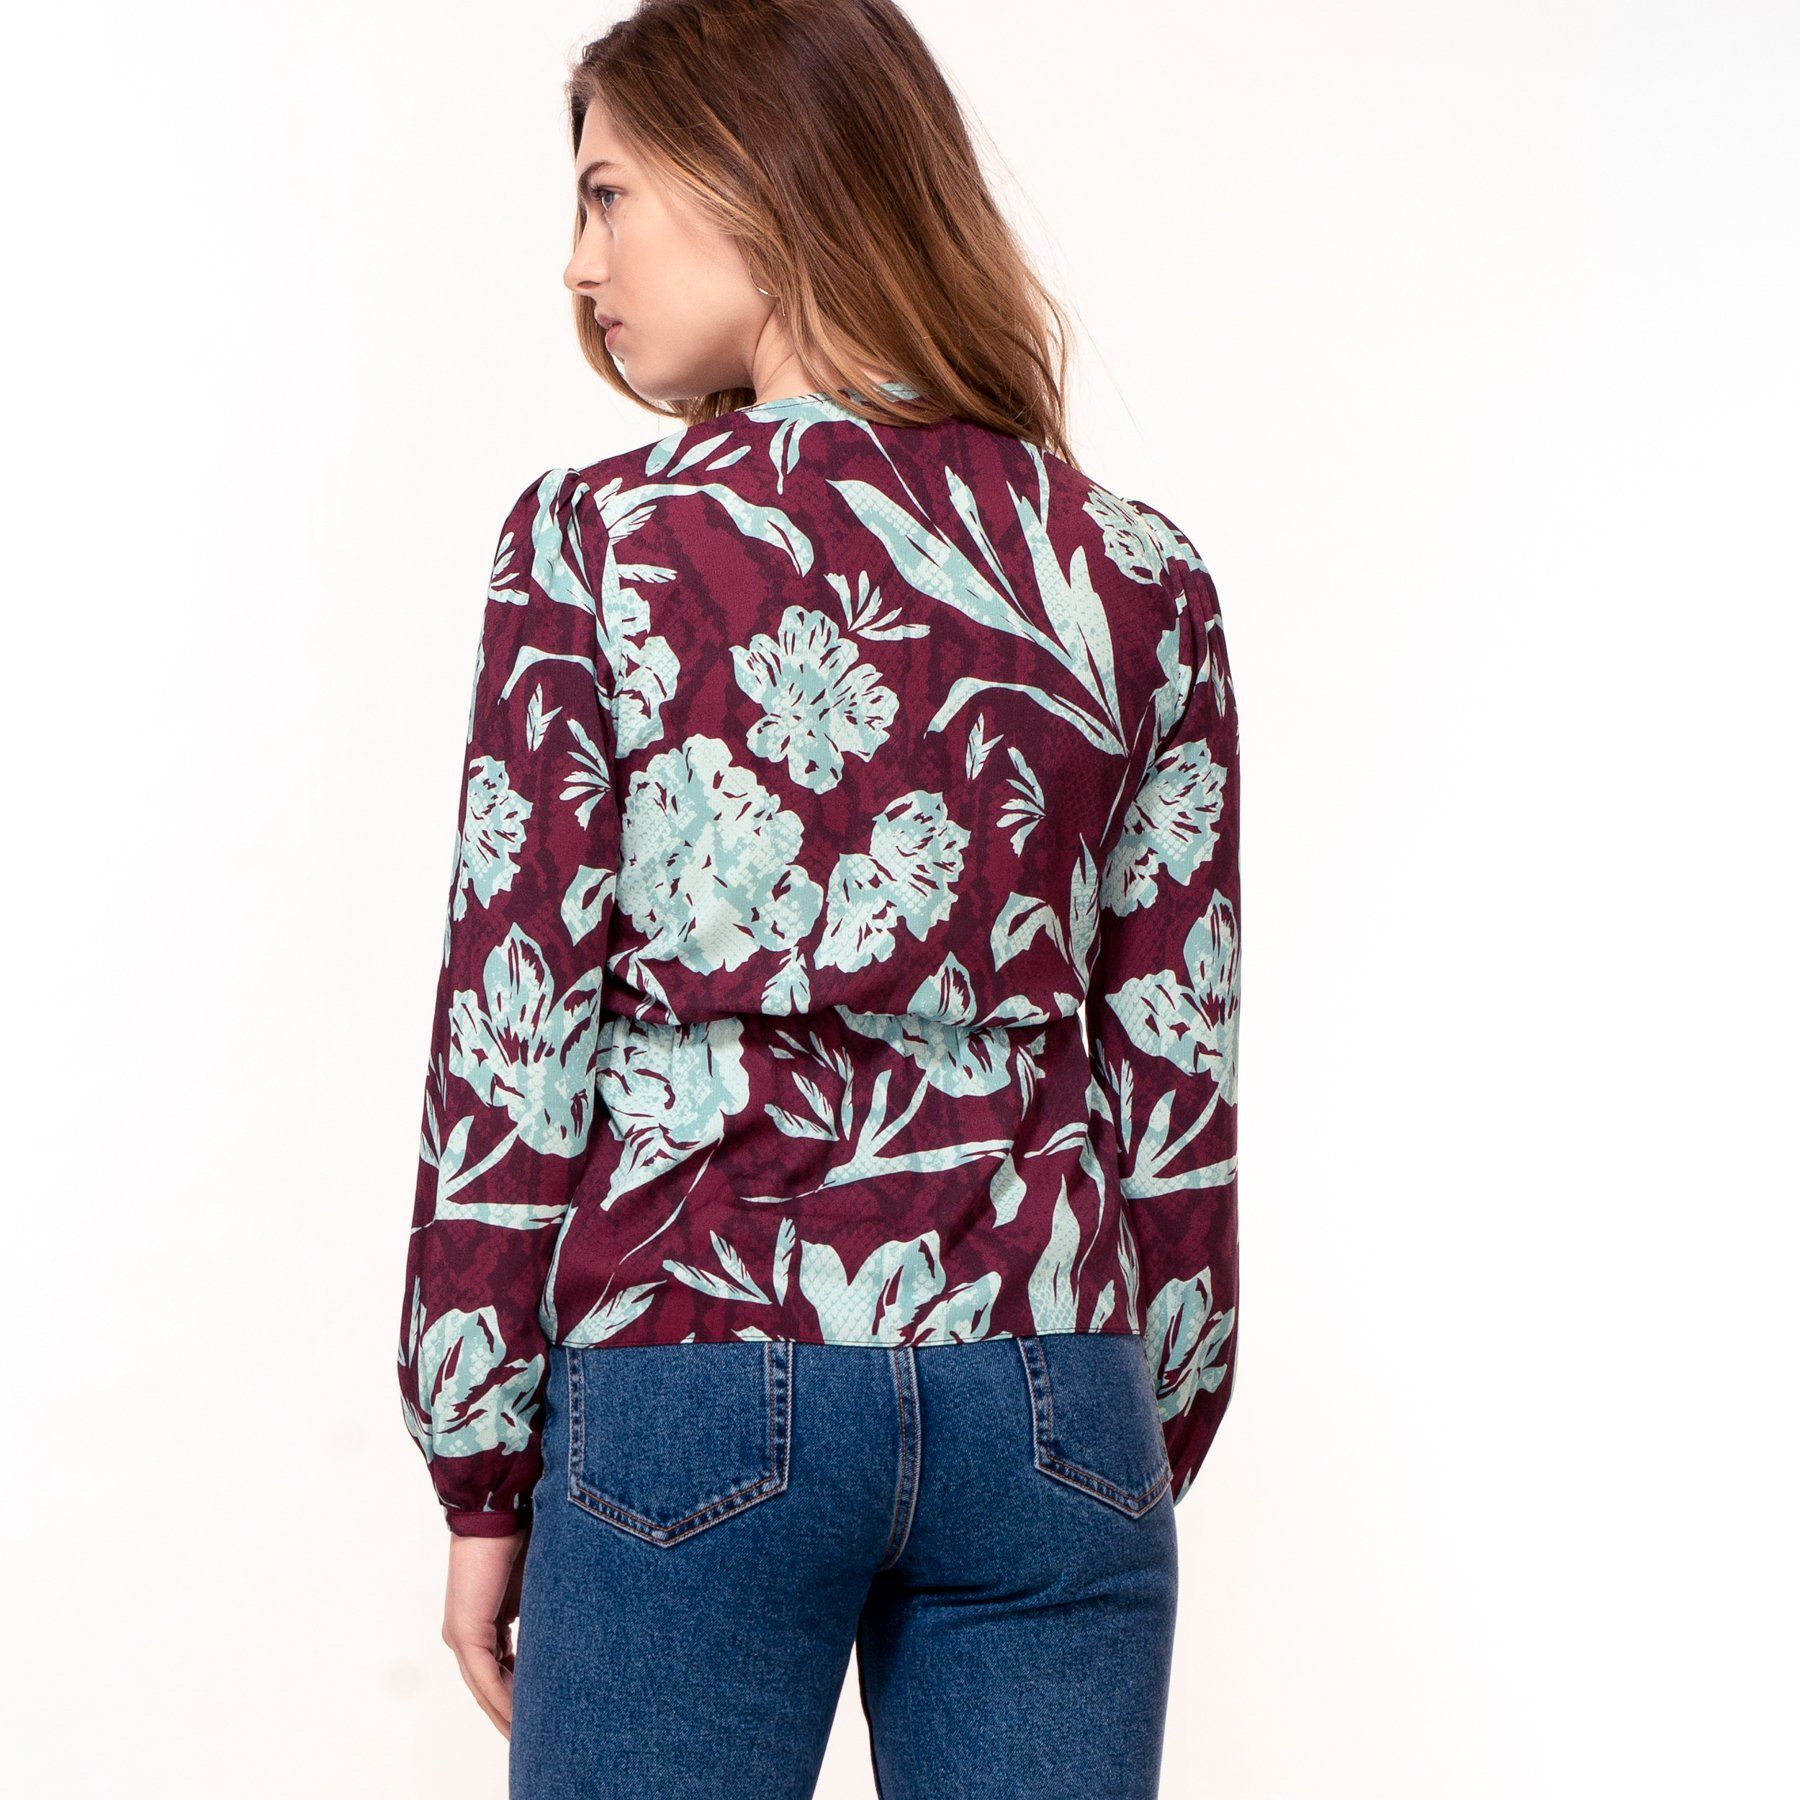 Purple Floral Snakeskin Print Top (Pre-Order) - Women's Tops - Hide The Label - Naiise